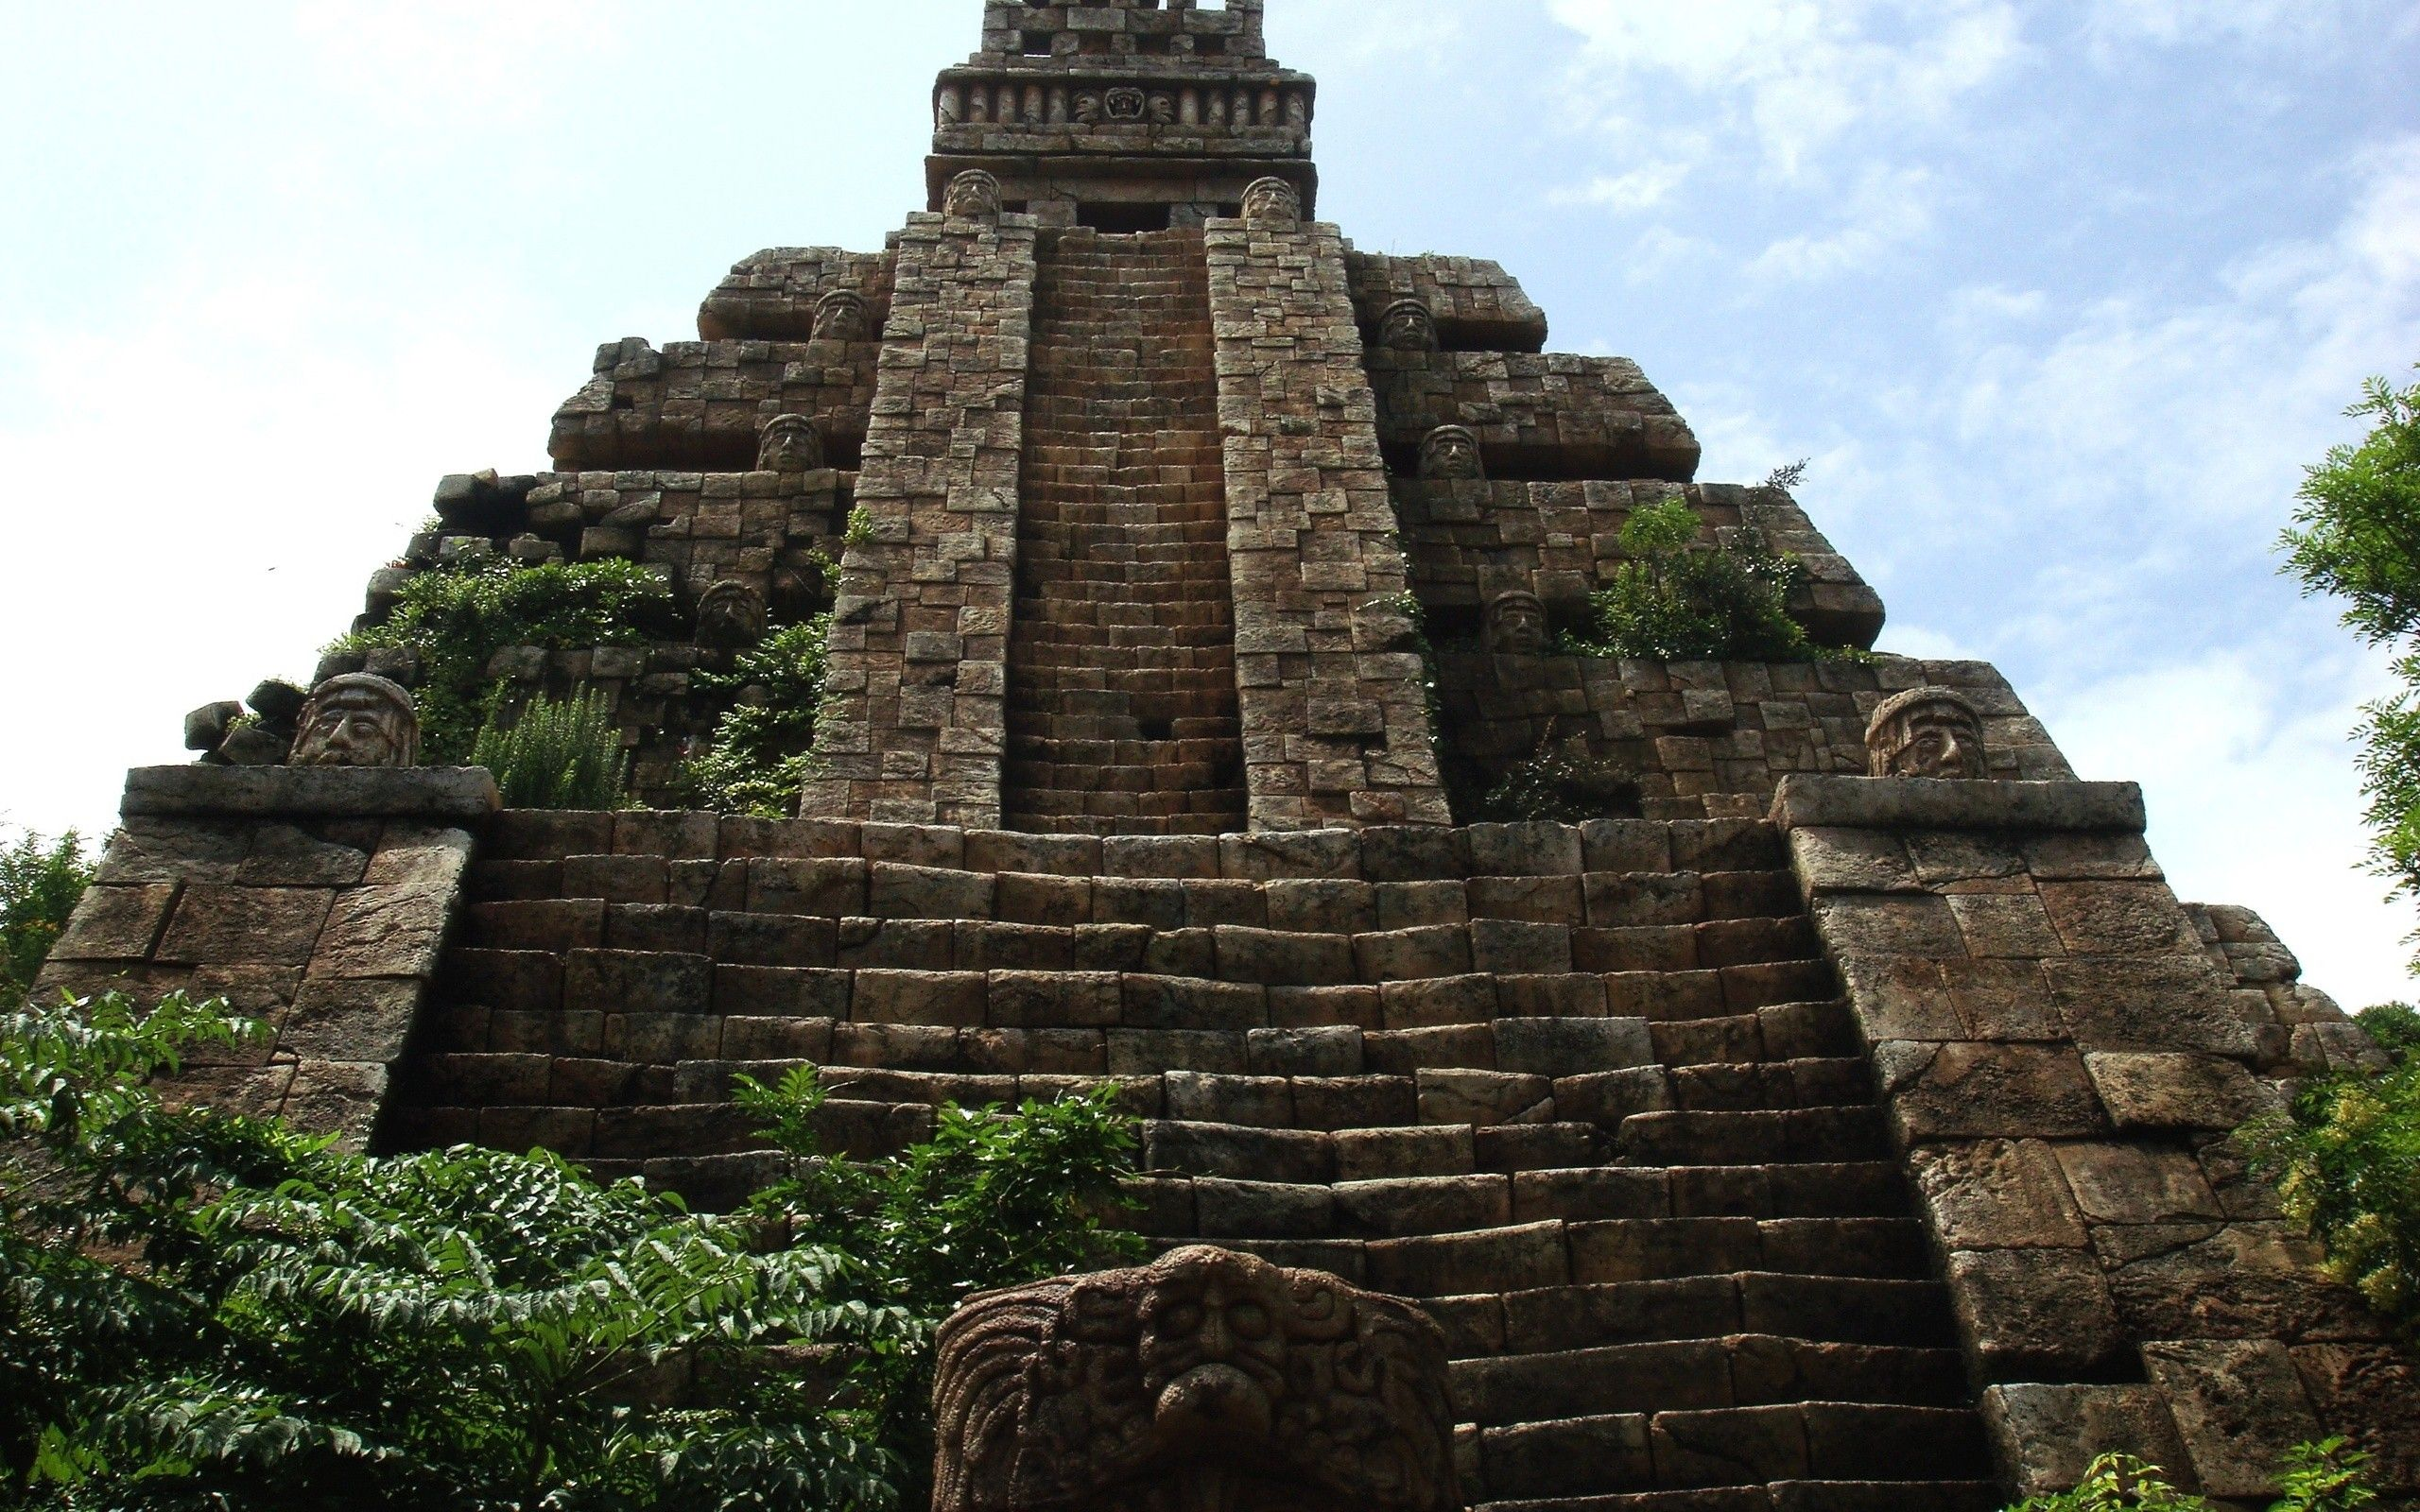 inside aztec temple google search throne room